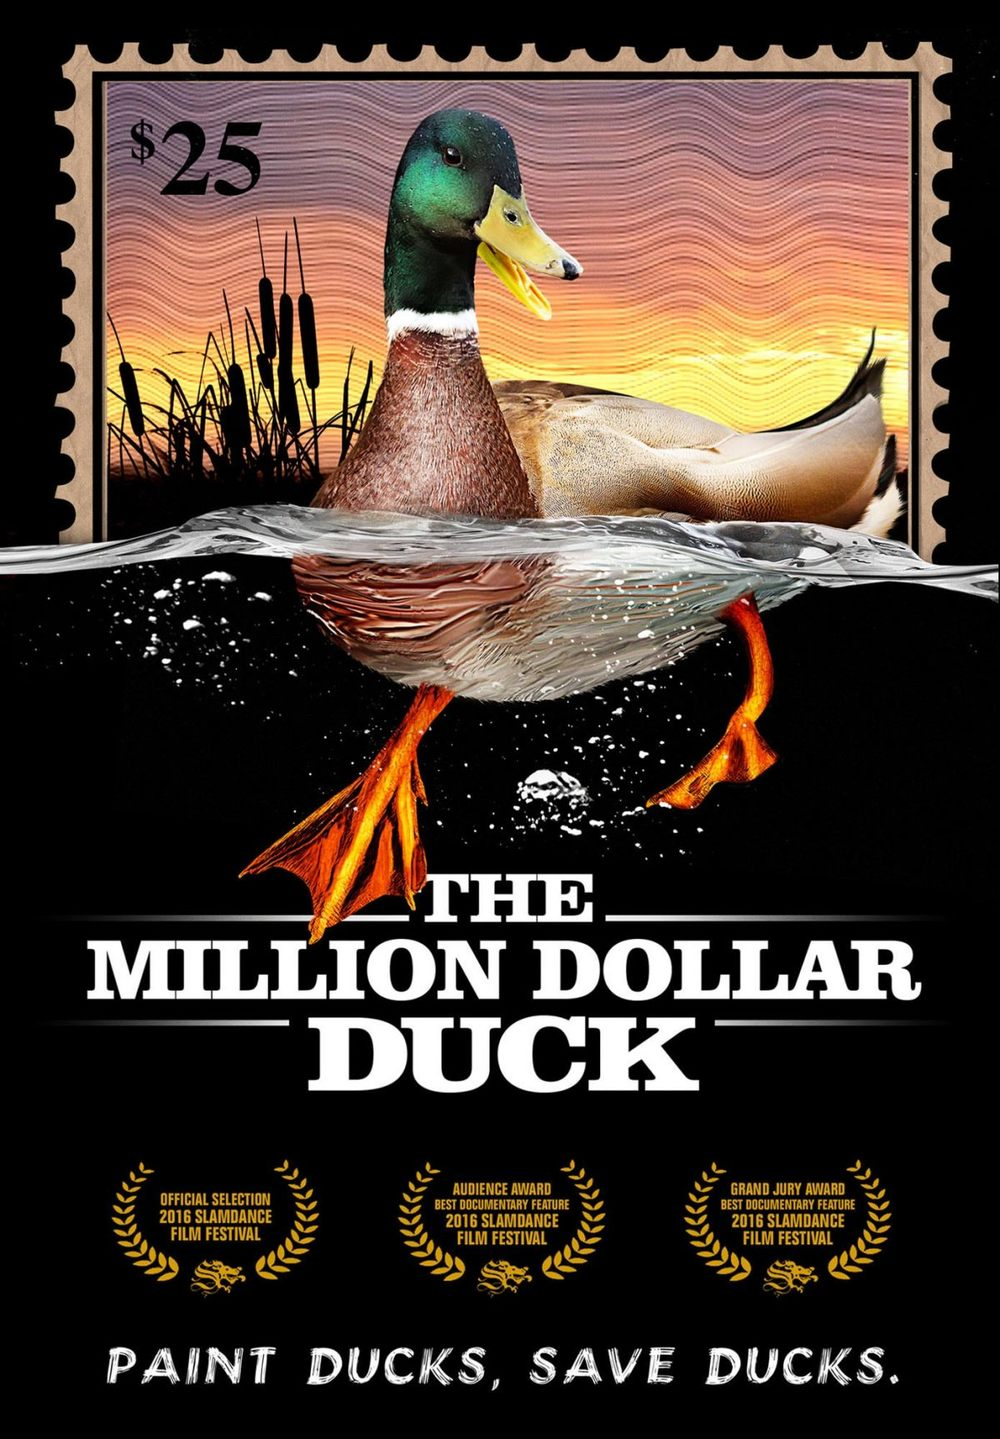 Million-Dollar-Duck-Poster.jpg